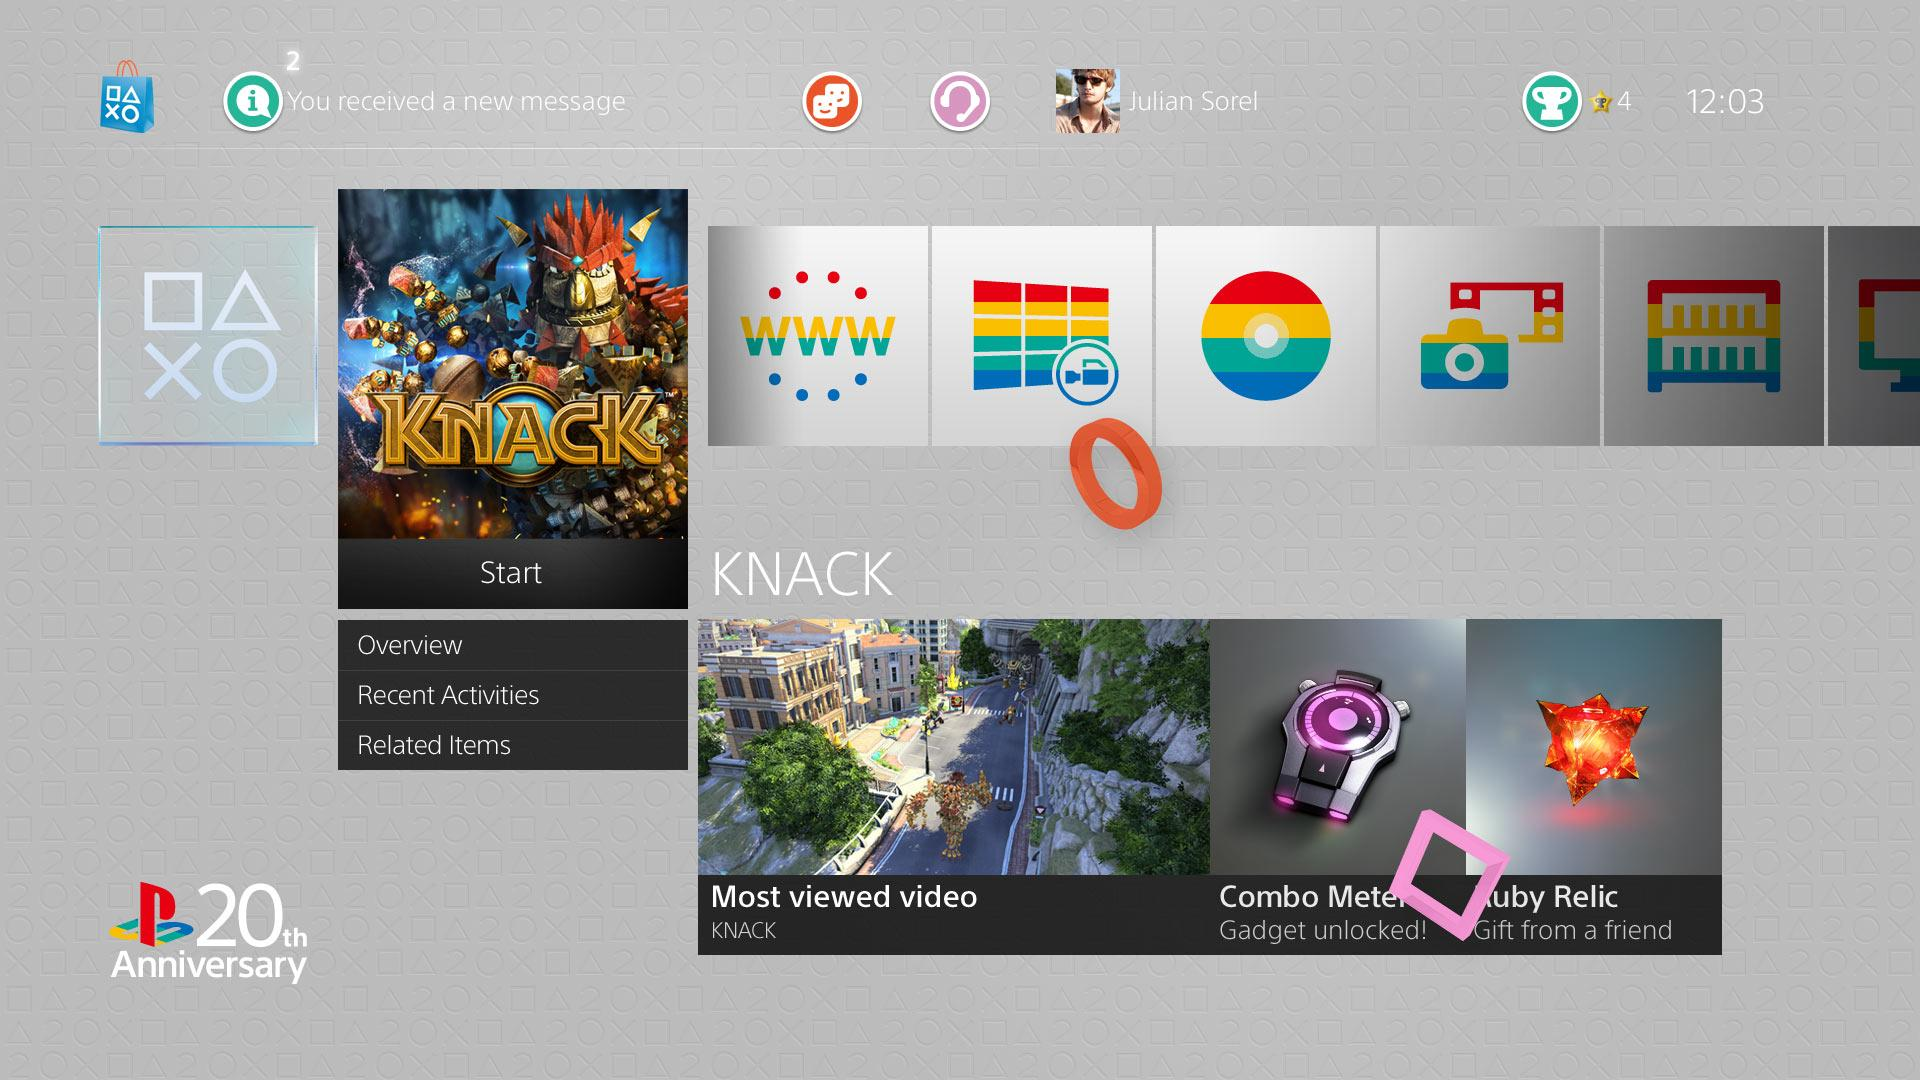 PS4, PS3, PS Vita 20th Anniversary Themes Finally Released